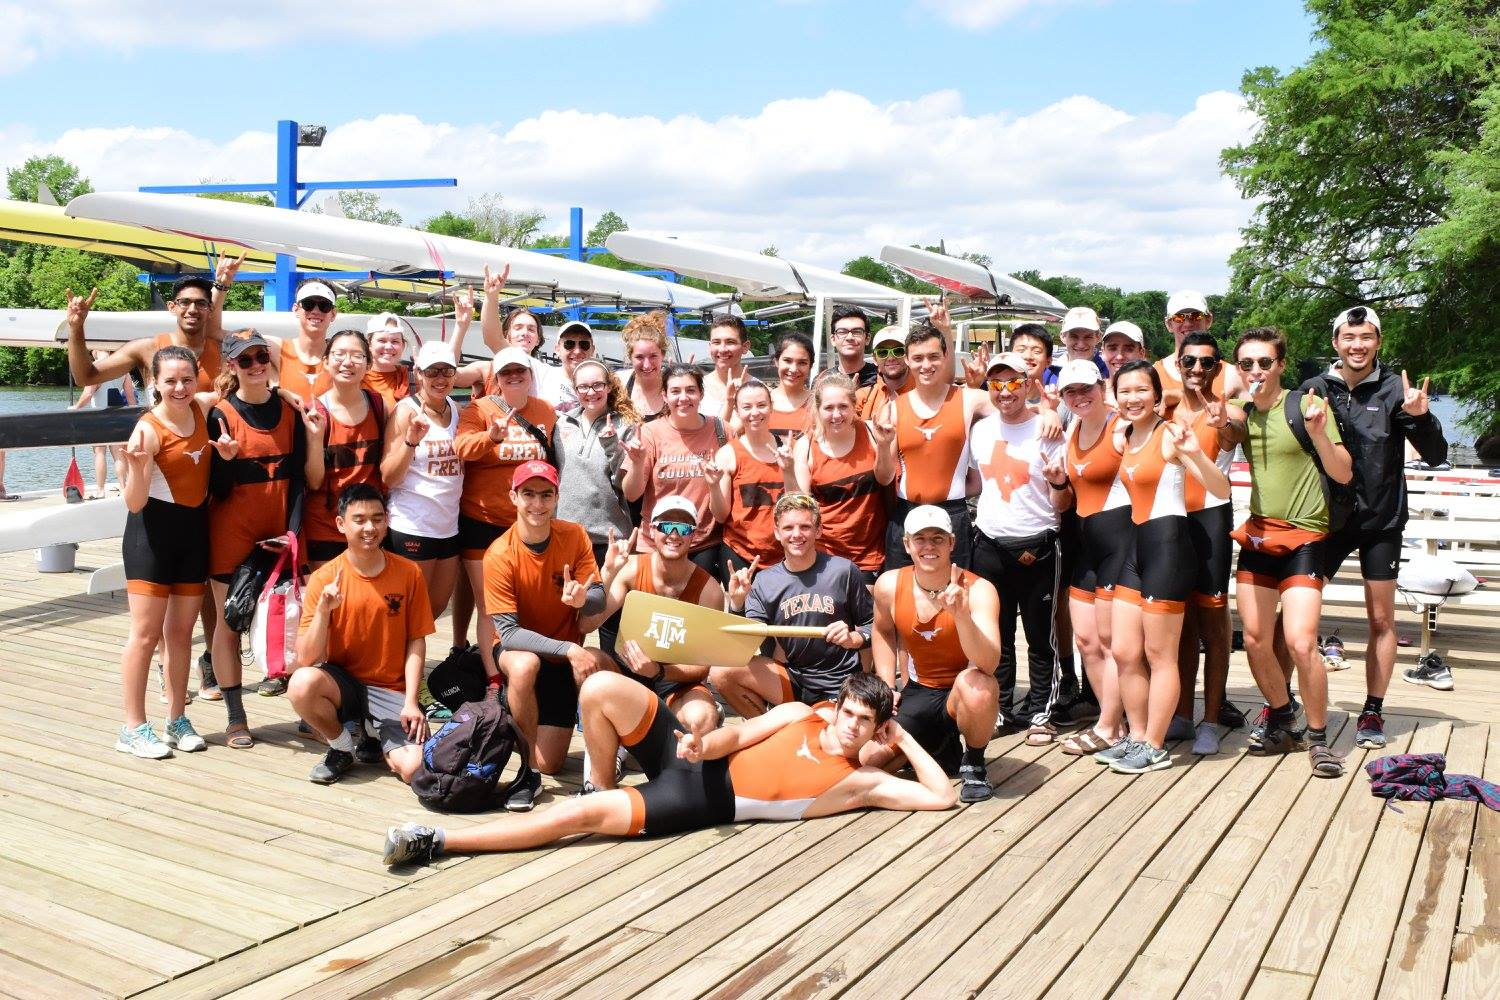 Texas Crew wins the Golden Oar competition against A&M for the fourth consecutive year as they push into this week of final preparation for SIRA!